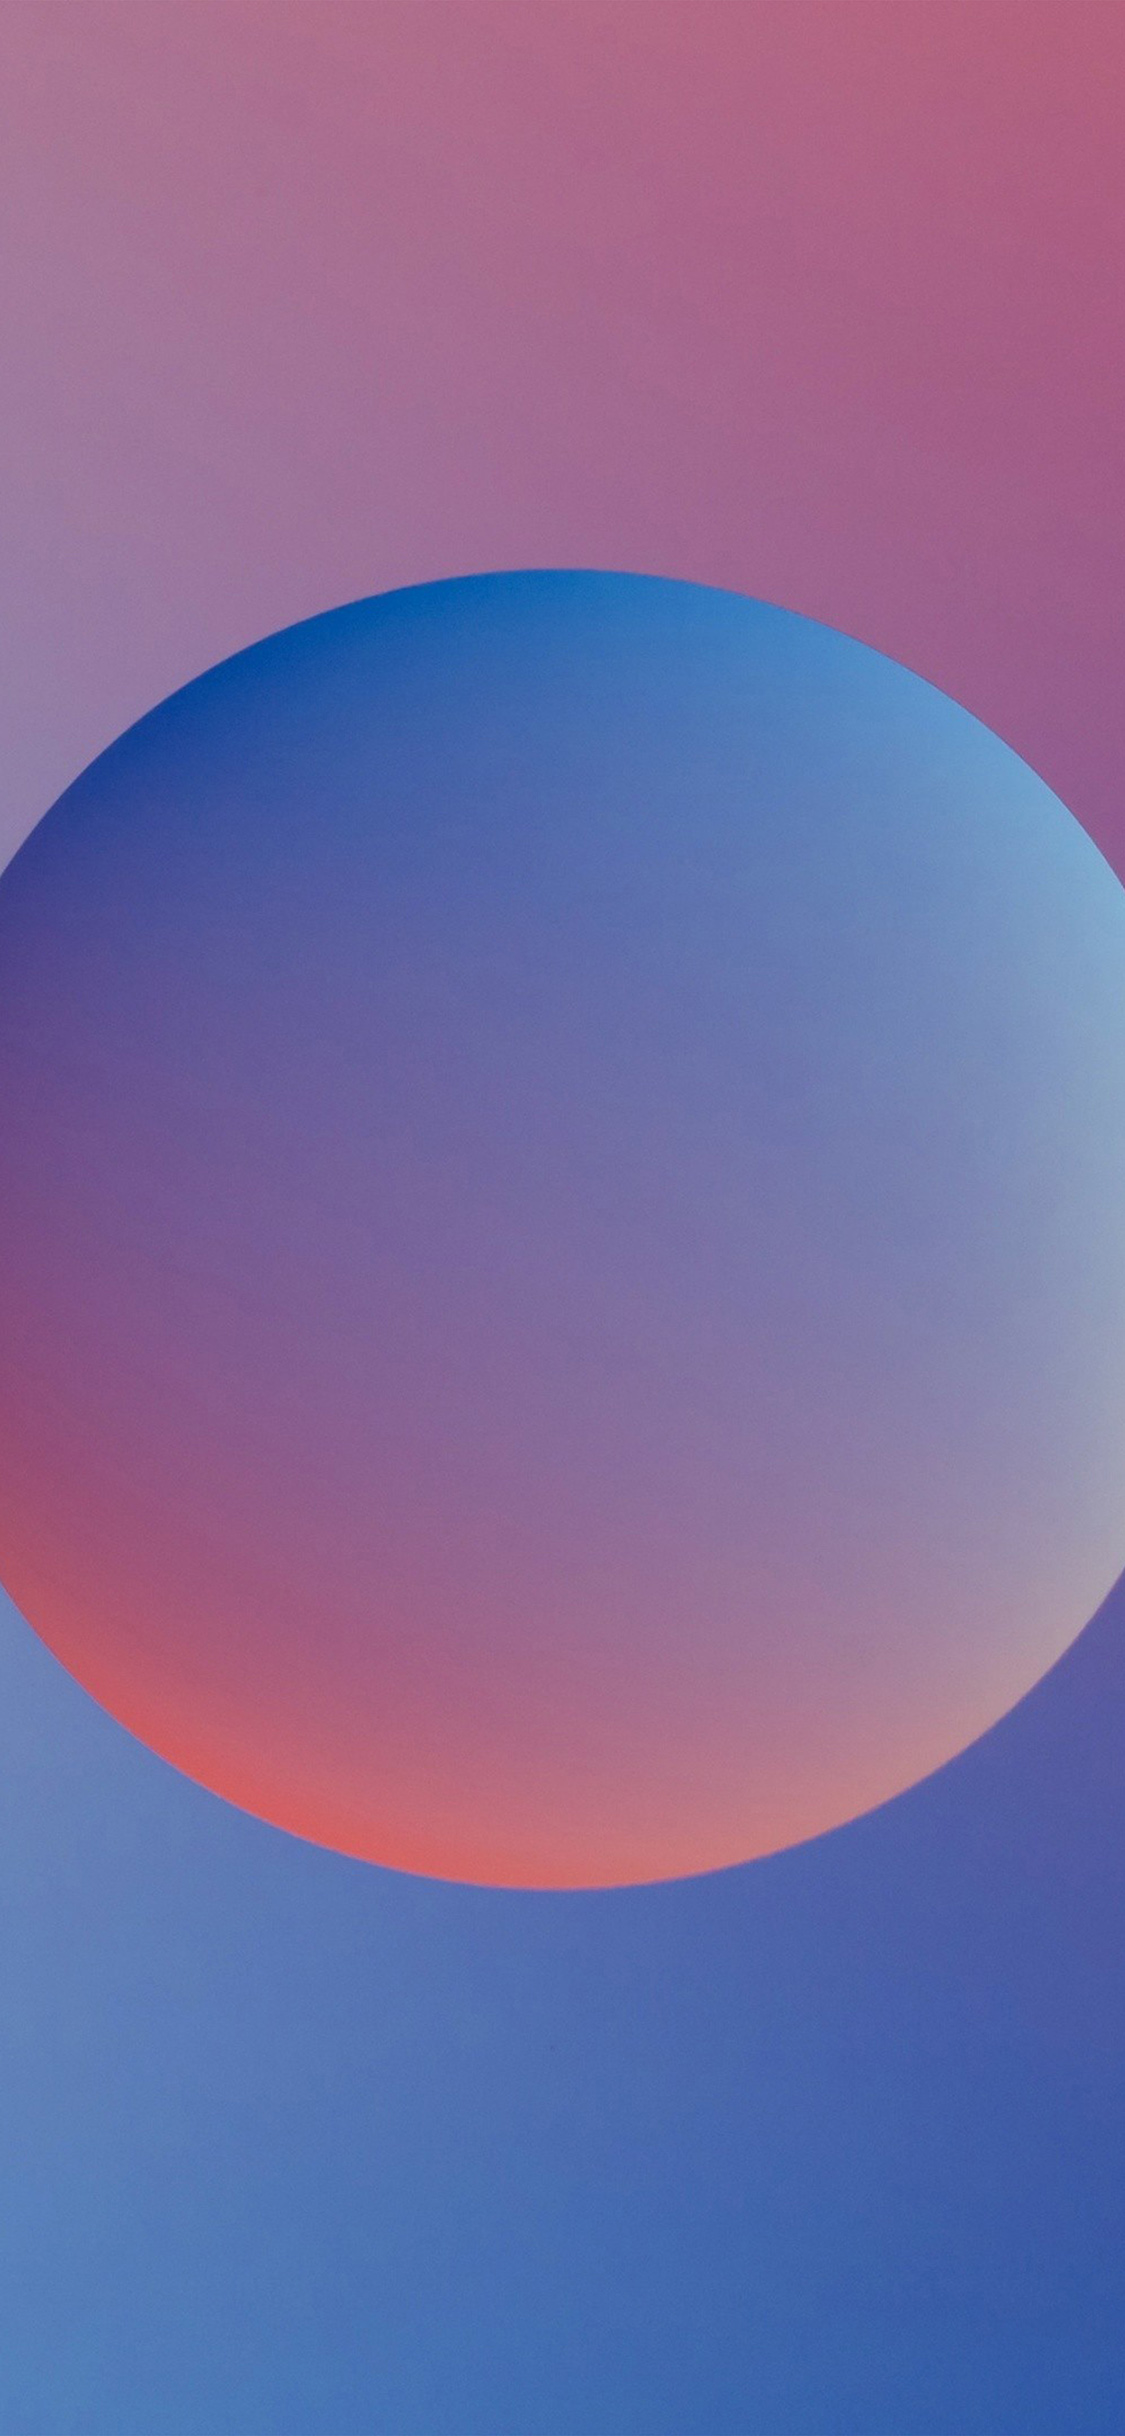 iPhoneXpapers.com-Apple-iPhone-wallpaper-ax56-minimal-ball-gradation-red-blue-illustration-art